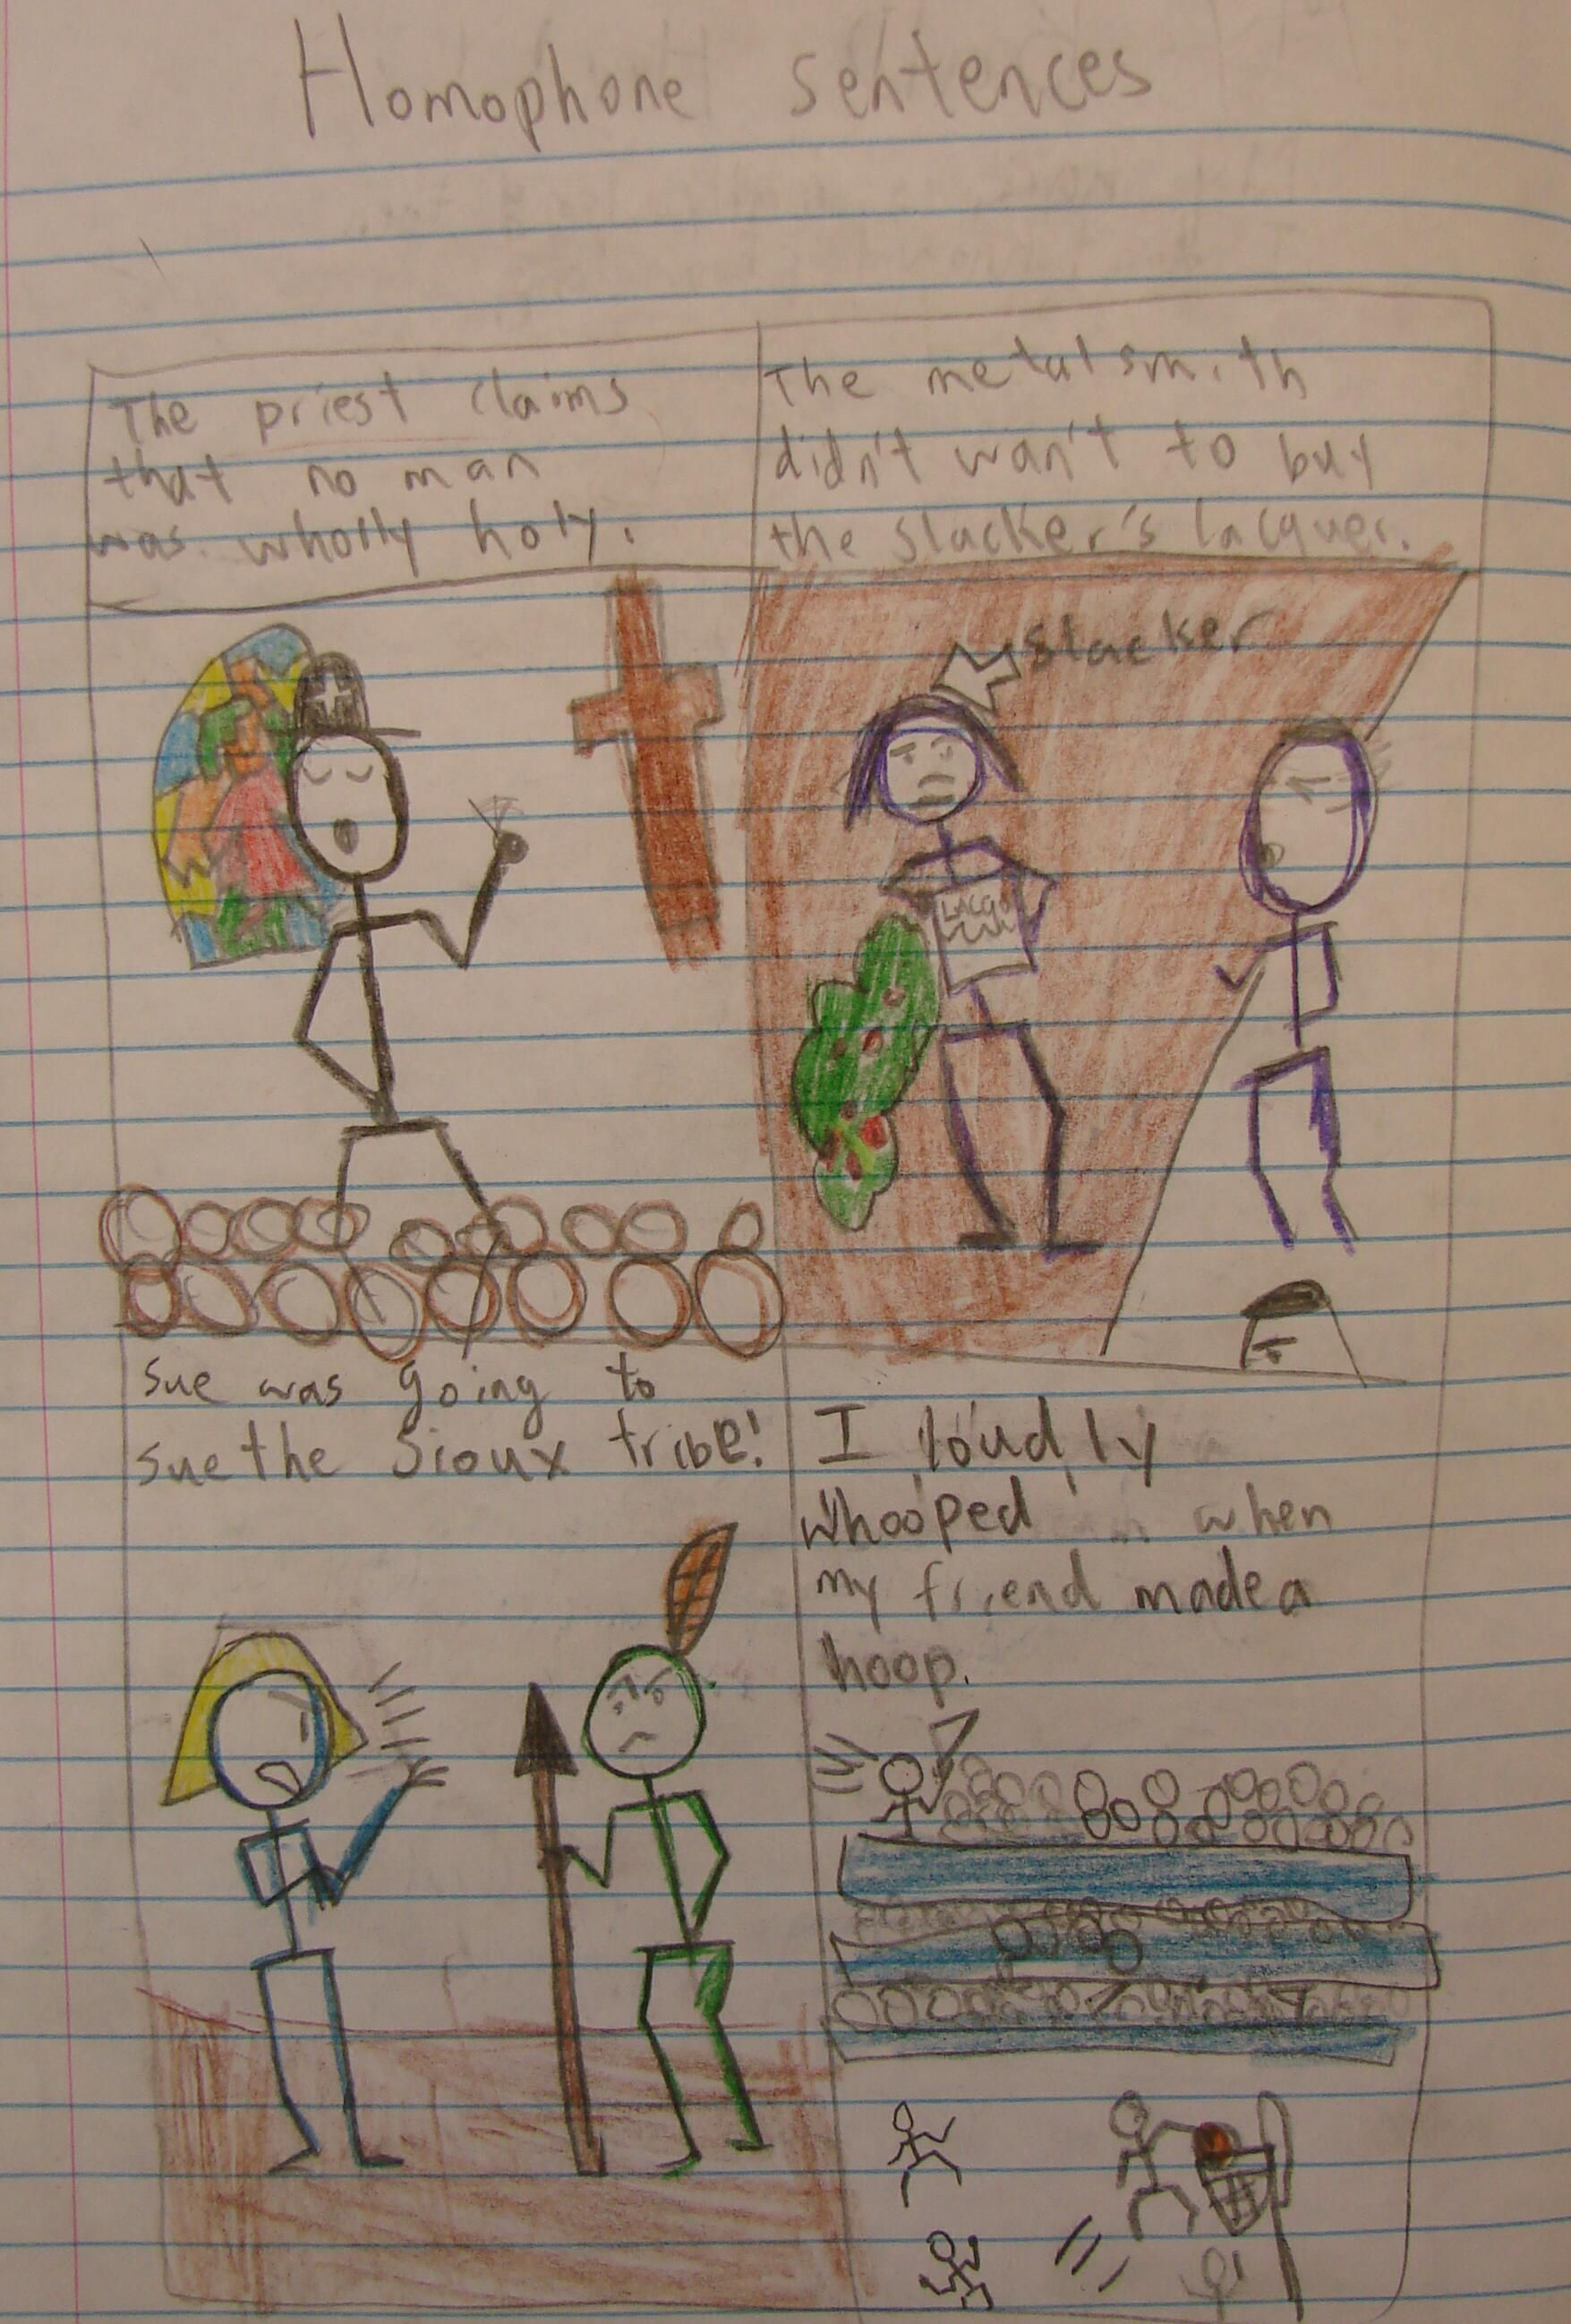 8th grader Chris took me up on my extra credit challenge of creating a page for his notebook with four homophone comics.  Here is the link to the online lesson that inspired this student sample: http://corbettharrison.com/GT/Chocolate-Moose.htm